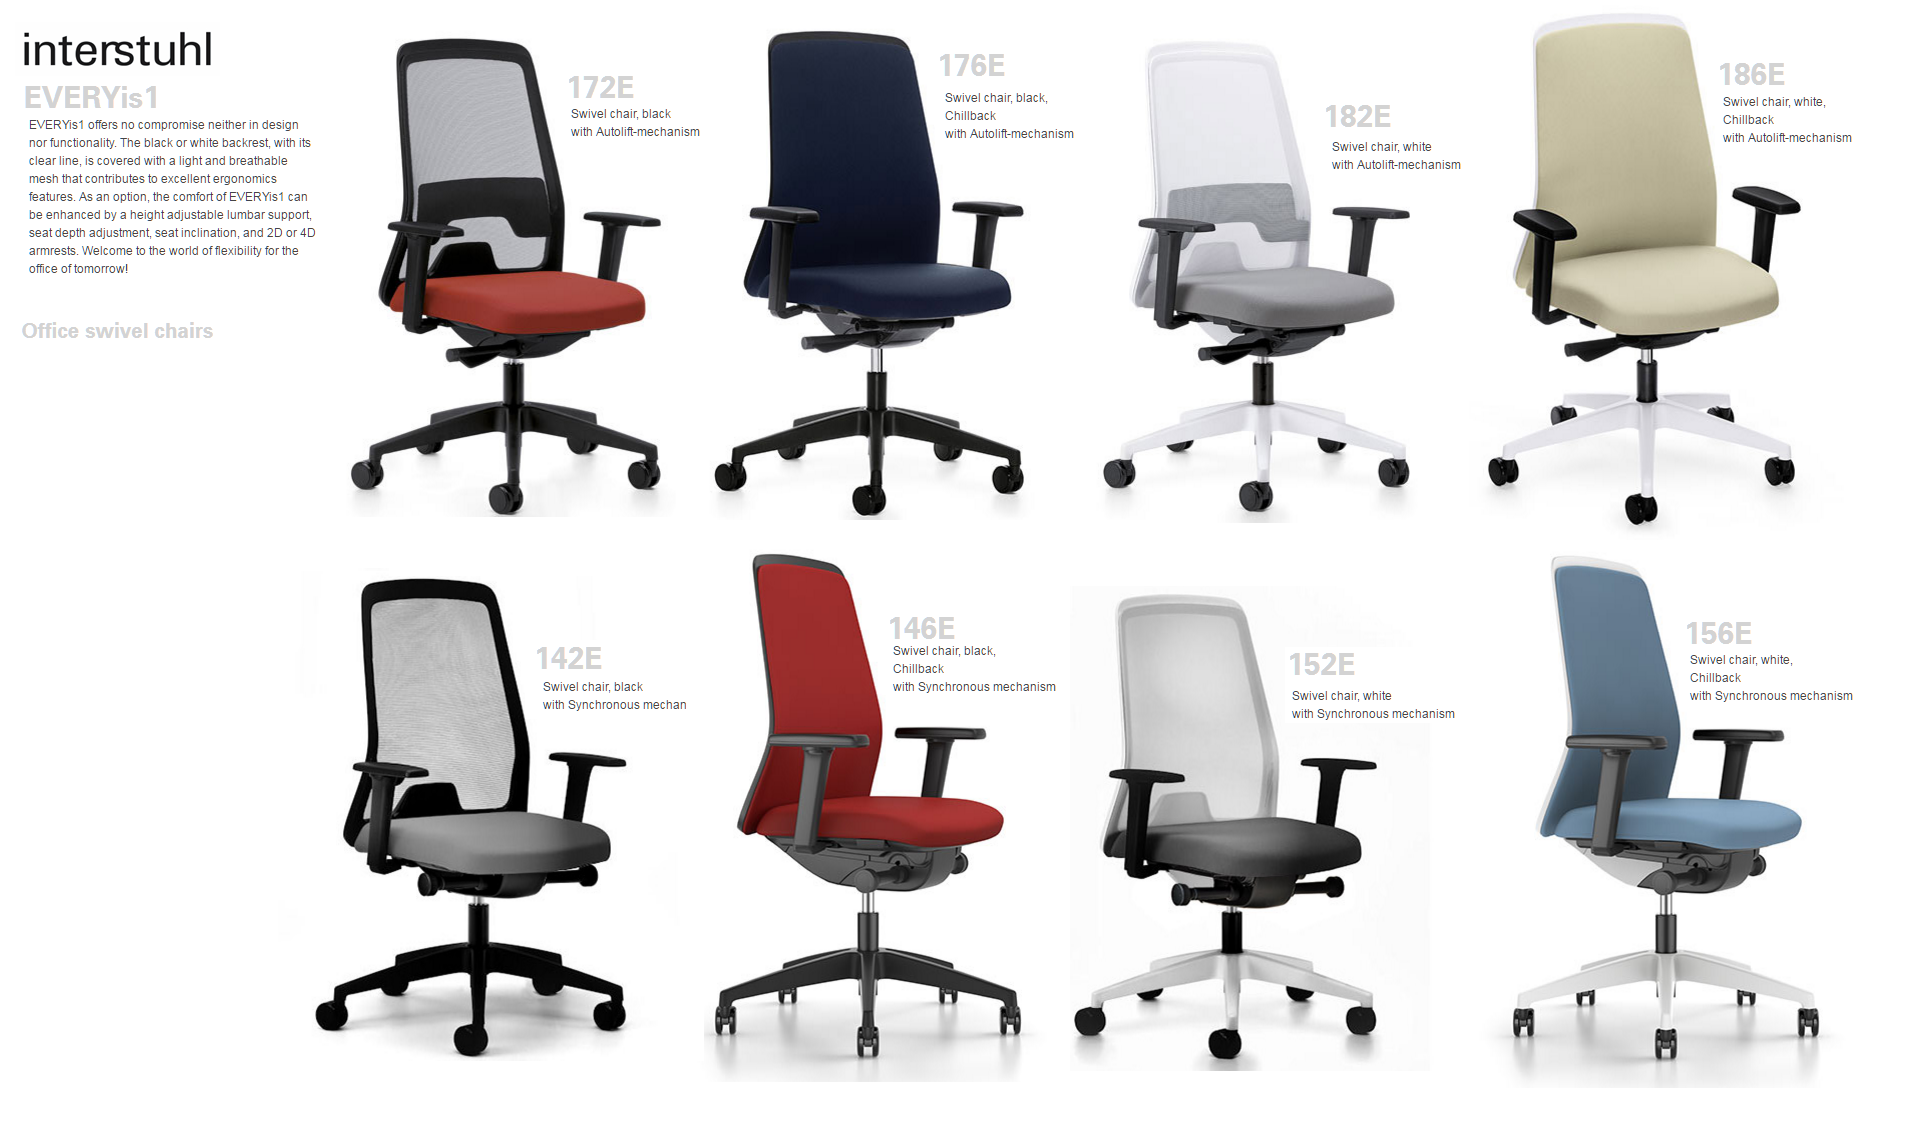 EVERYis1 SWIVEL CHAIRS